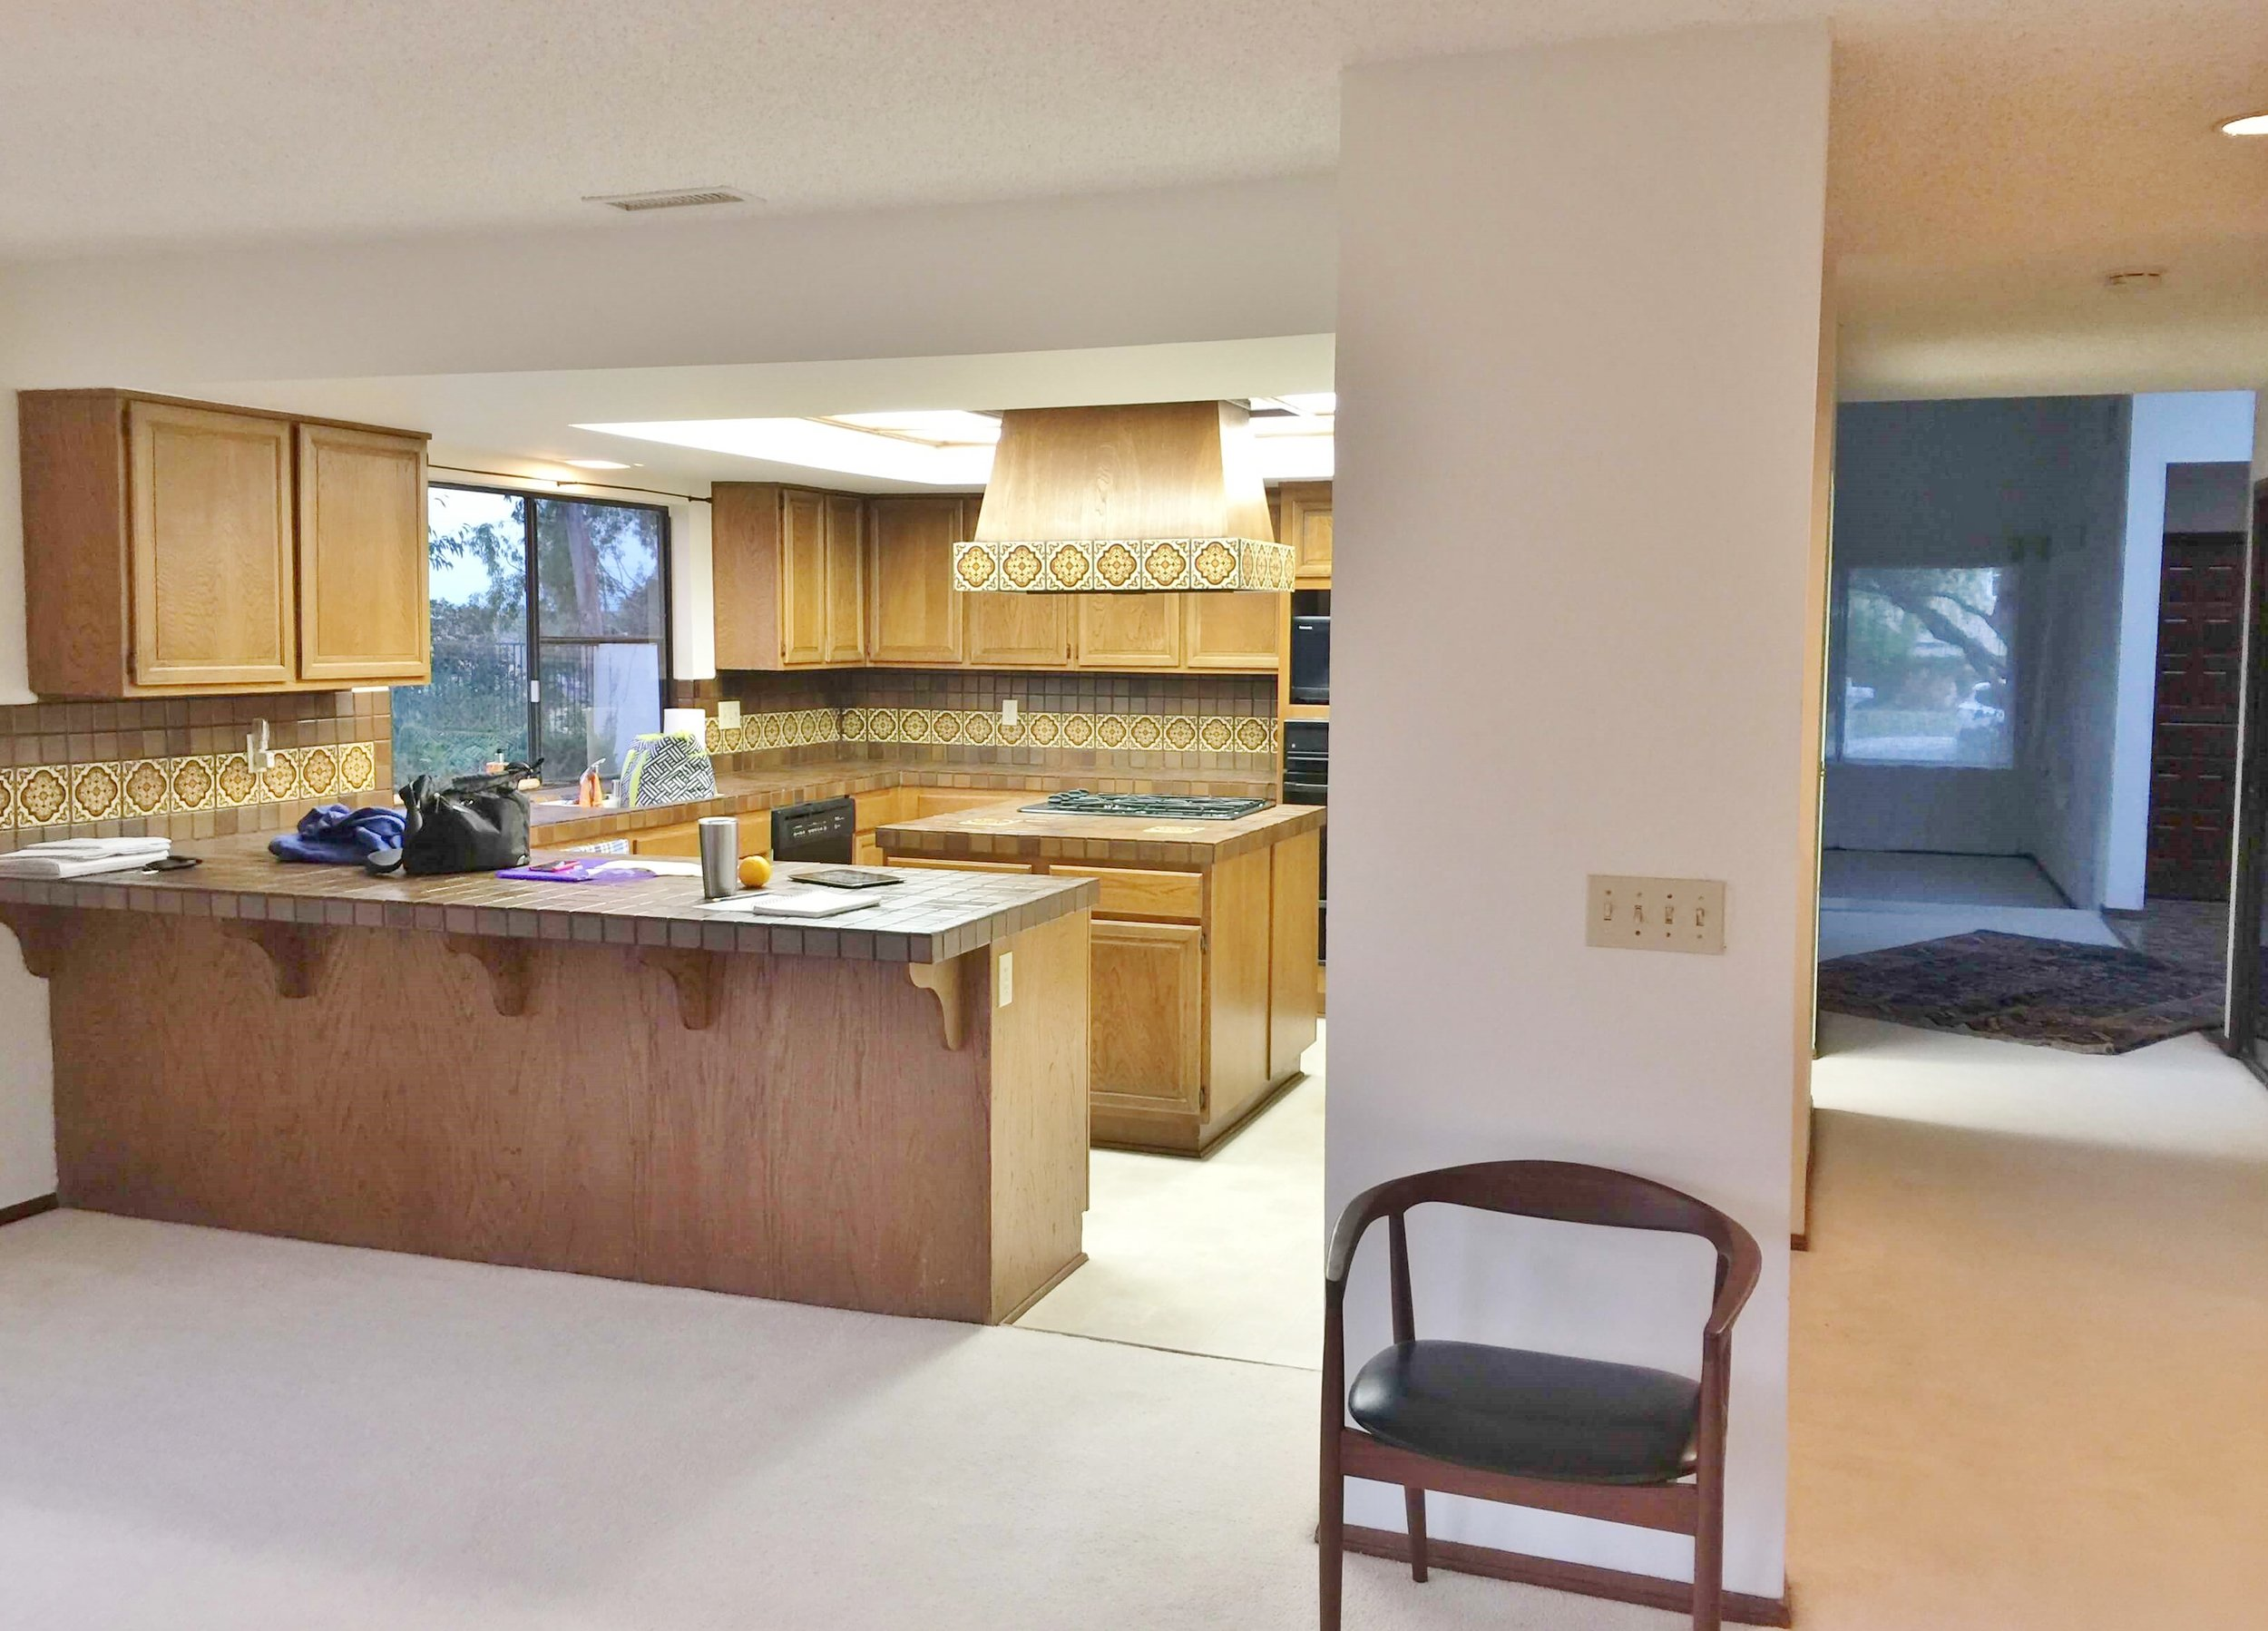 Before image of kitchen to be remodeled with brown wood cabinets